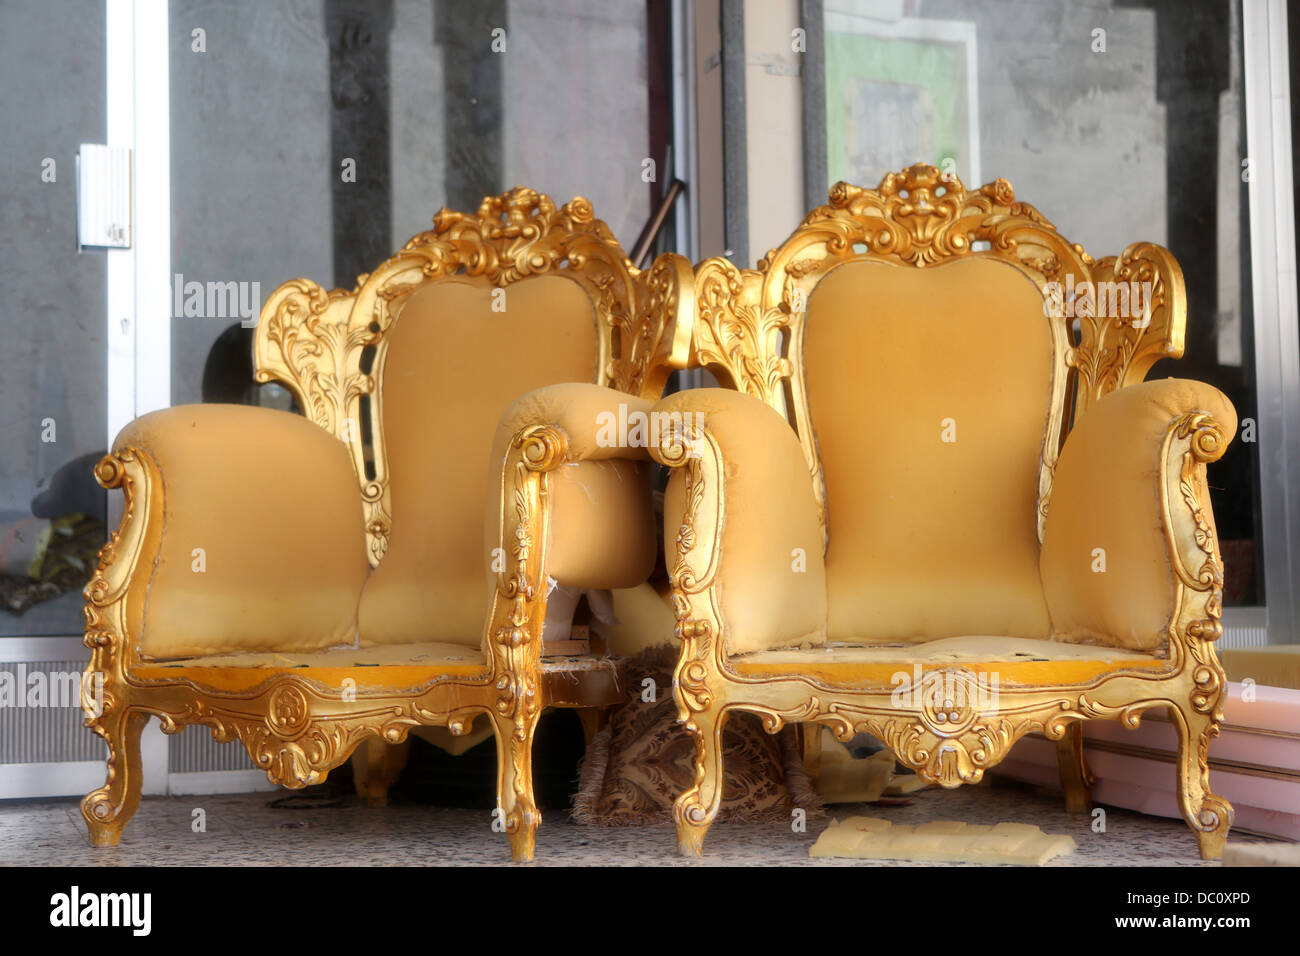 Gold Ornate Chairs Wait Outside A Shop To Be Upholstered In Dibba, Oman